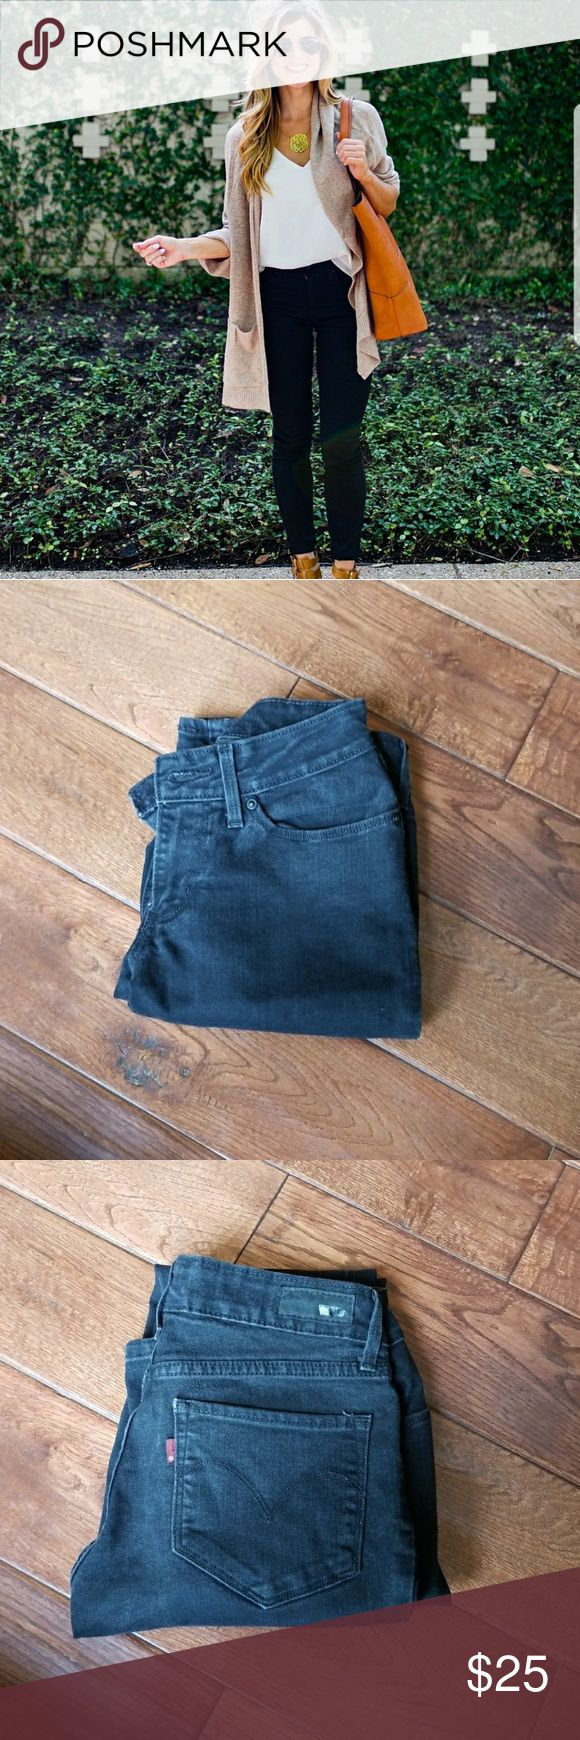 Black Levi jeans Like new condition black Levi jeans! Purchased from another posher but they do not fit me at all, my loss your gain.   >no trades  >smoke and pet free home Levi's Jeans Skinny